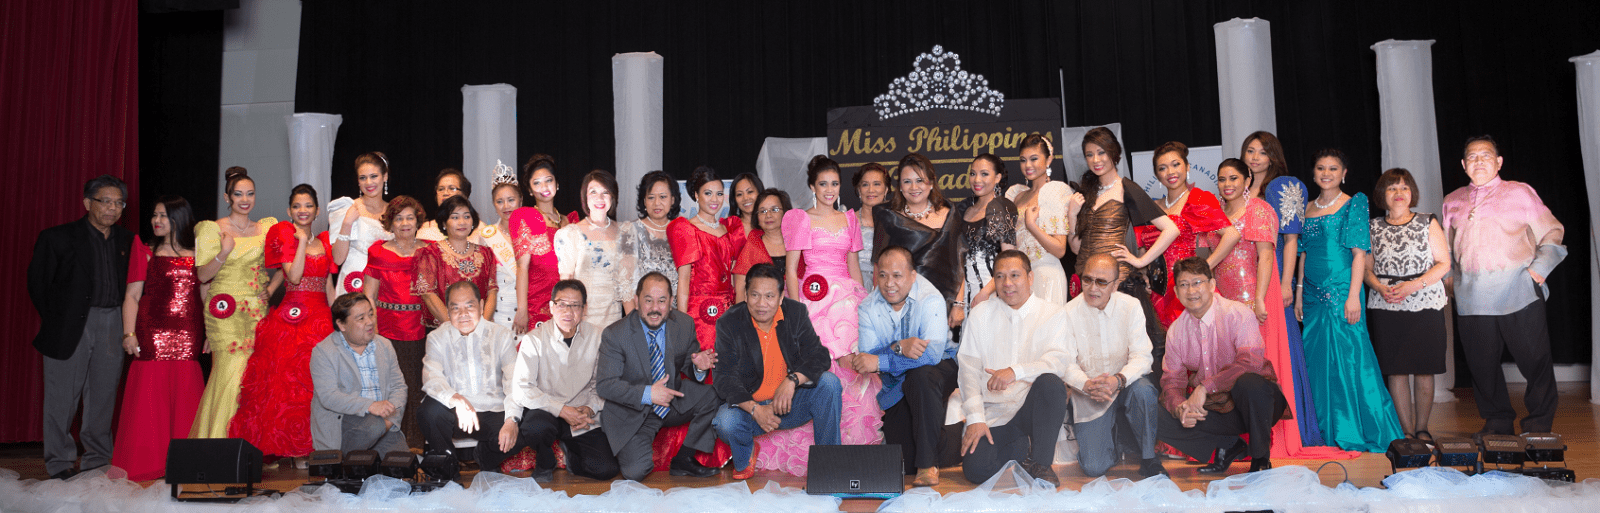 Little Miss Philippines Canada candidates together with Rosemer Enverga and PCCF Officers.